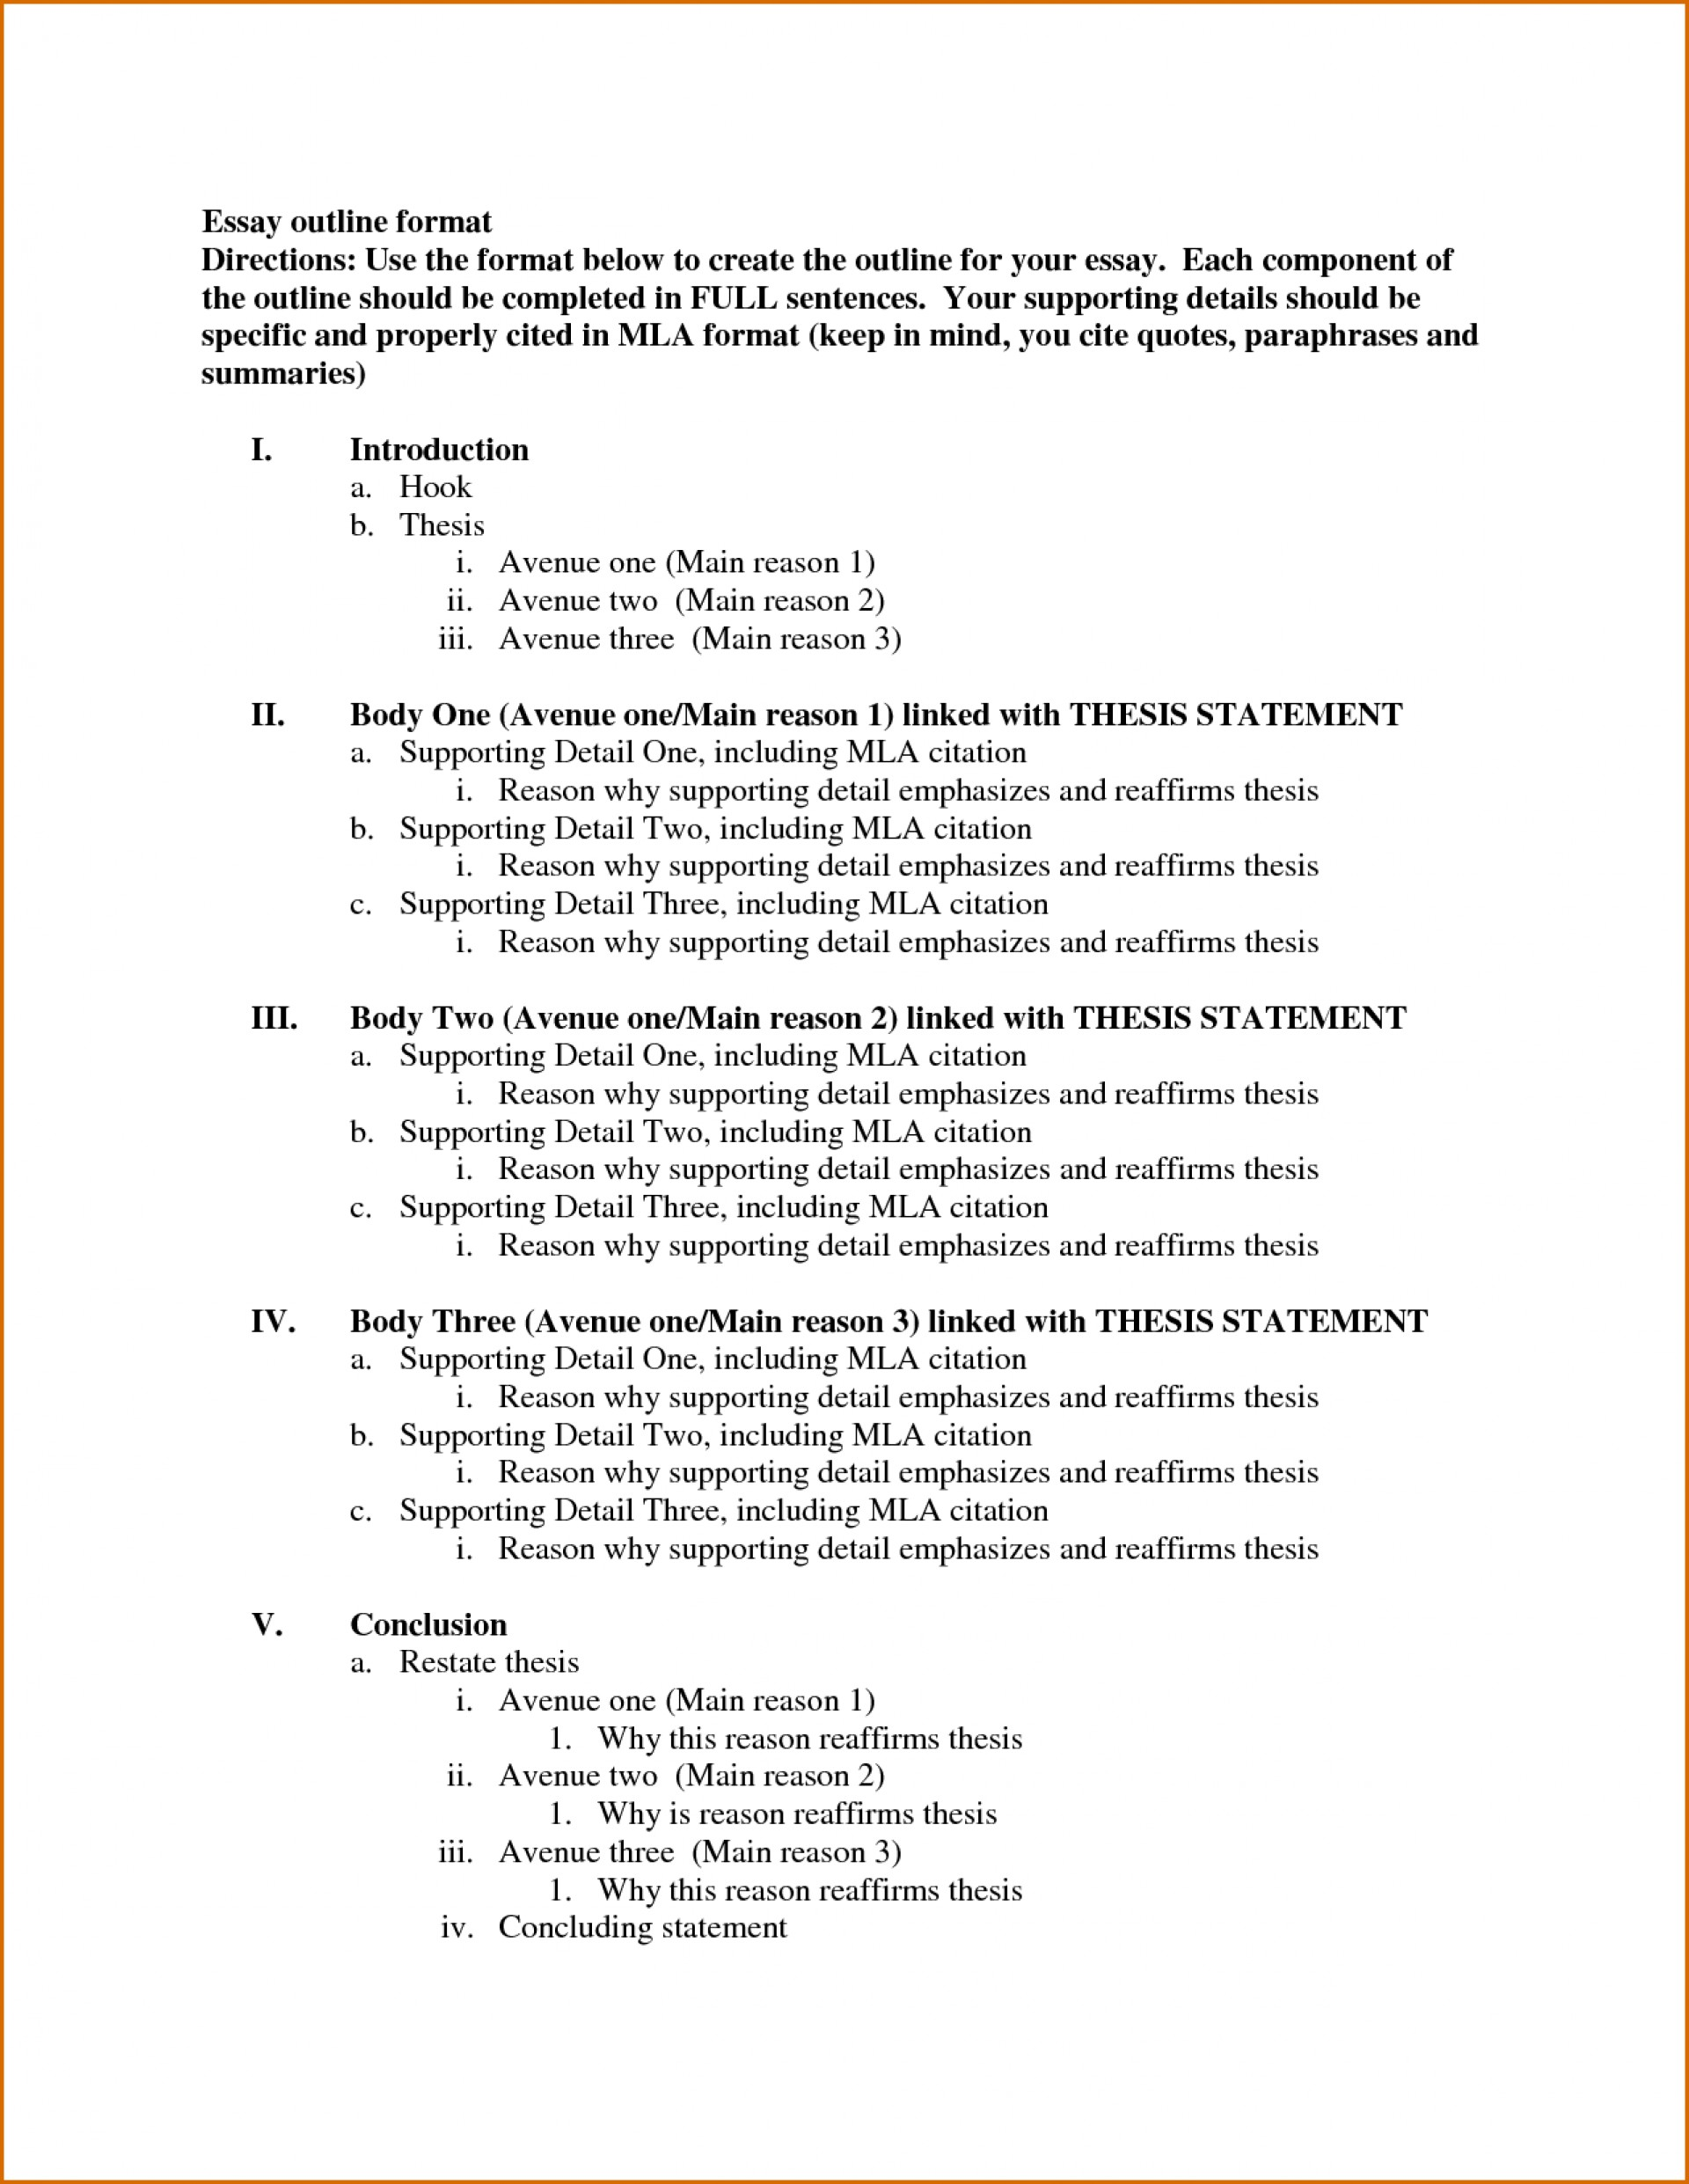 003 Essay Example Outline Template How To Do An Astounding For A Simple Mla Format Sample 1920